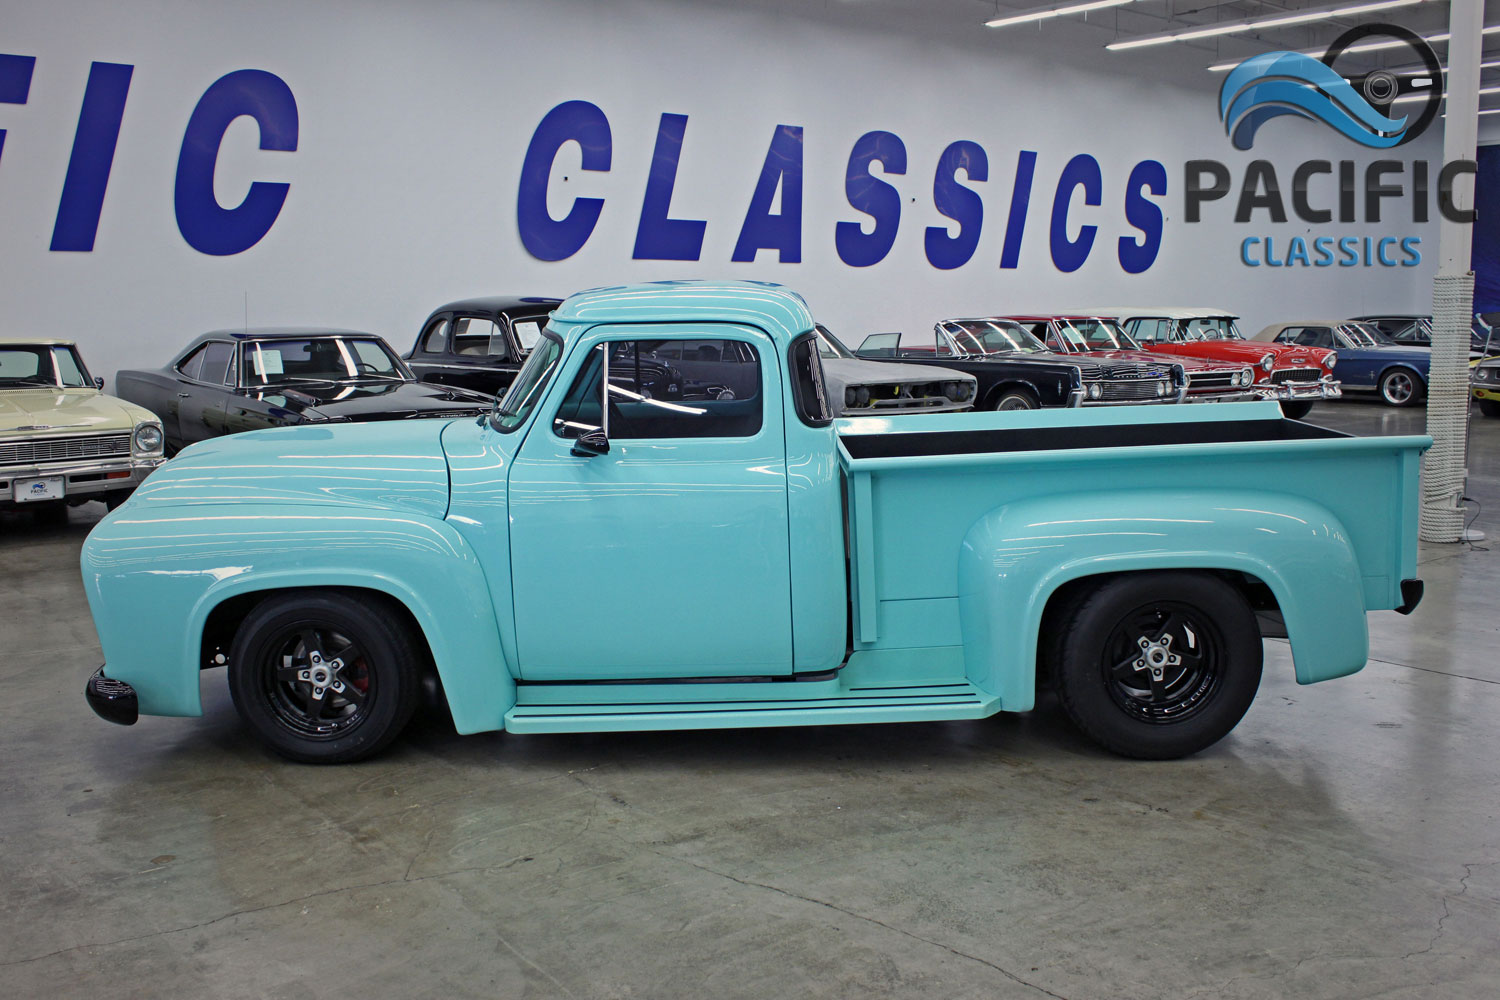 1955 Ford Pickup - Pacific Classics